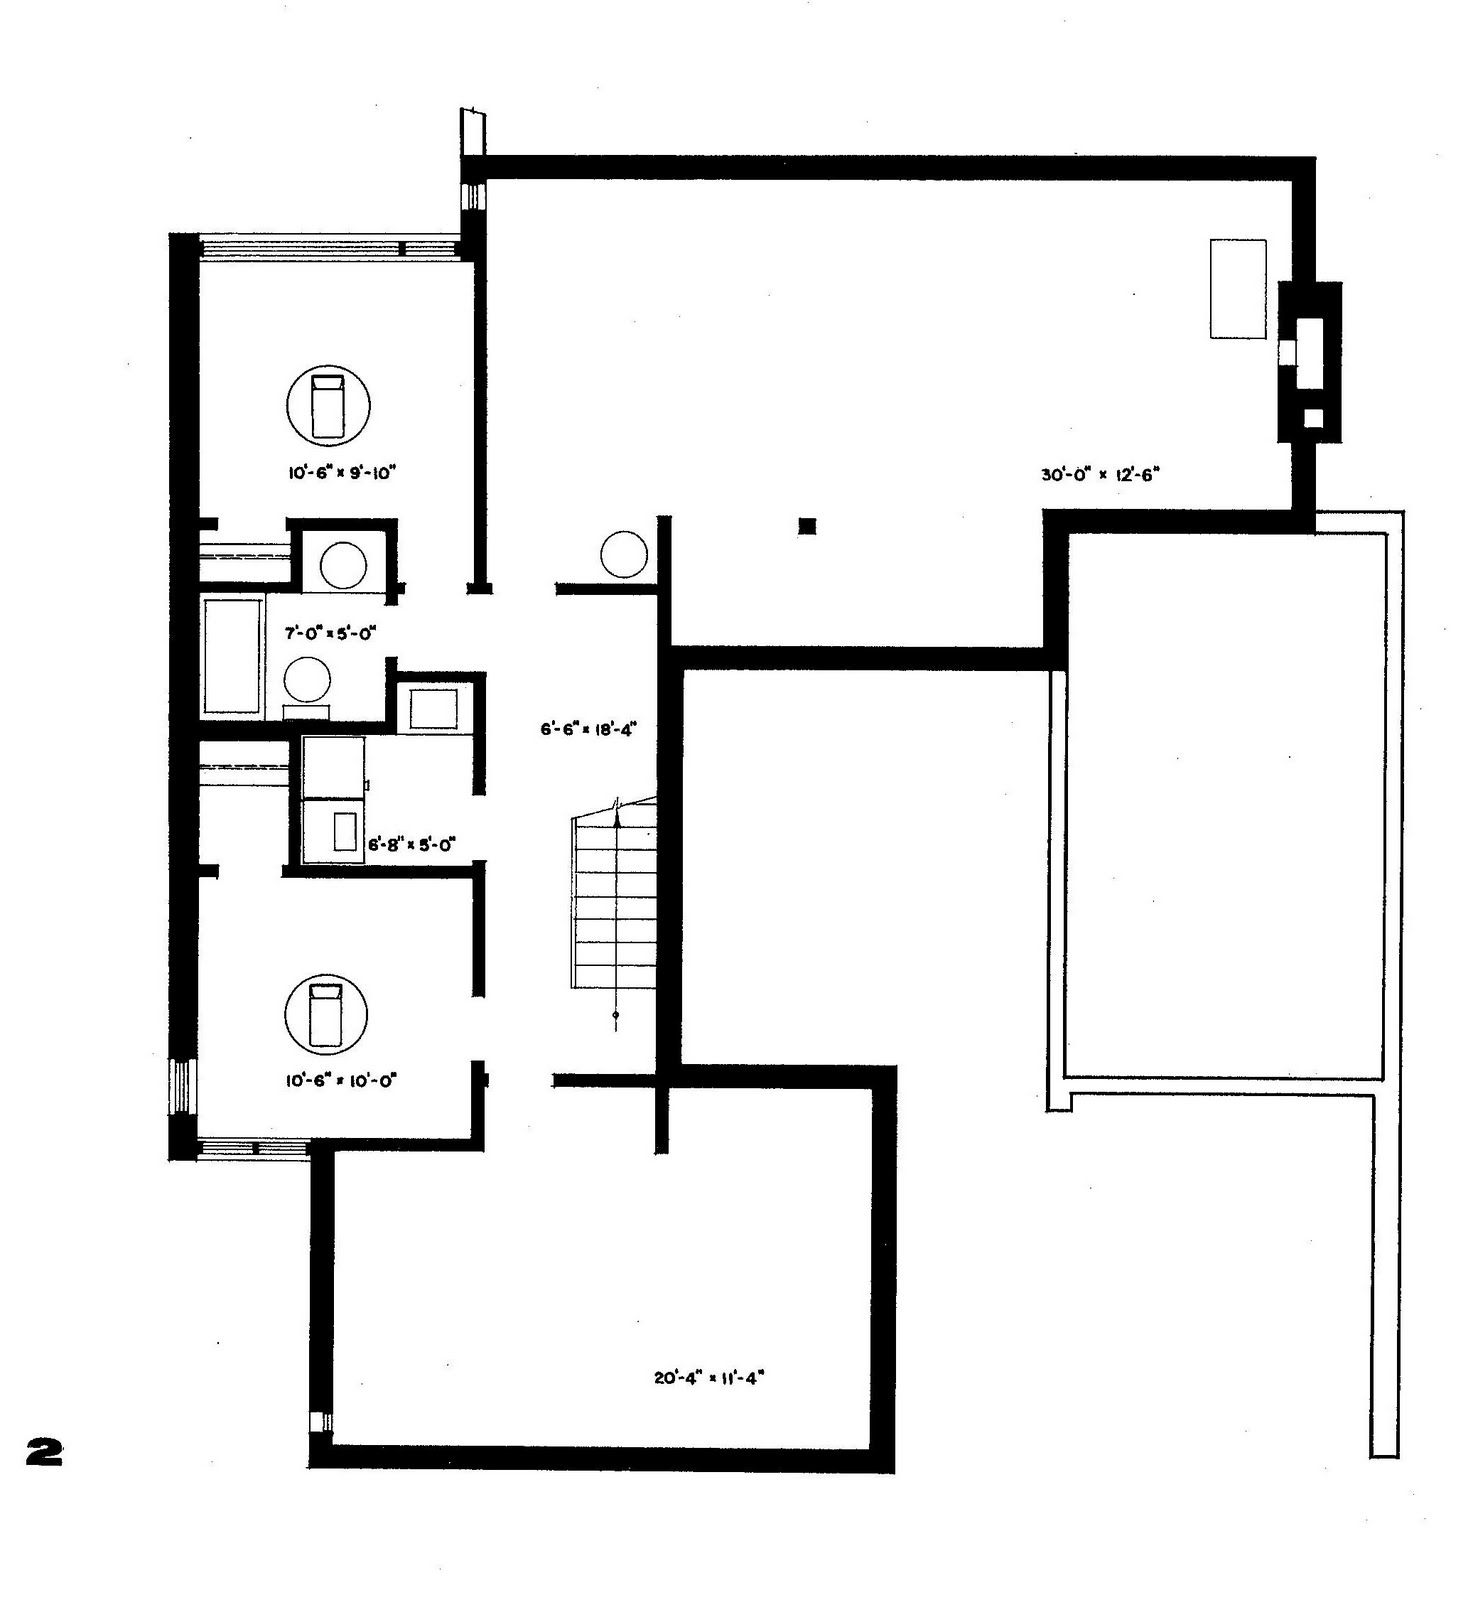 Mid century modern and 1970s era ottawa cmhc house for 1950s council house floor plan